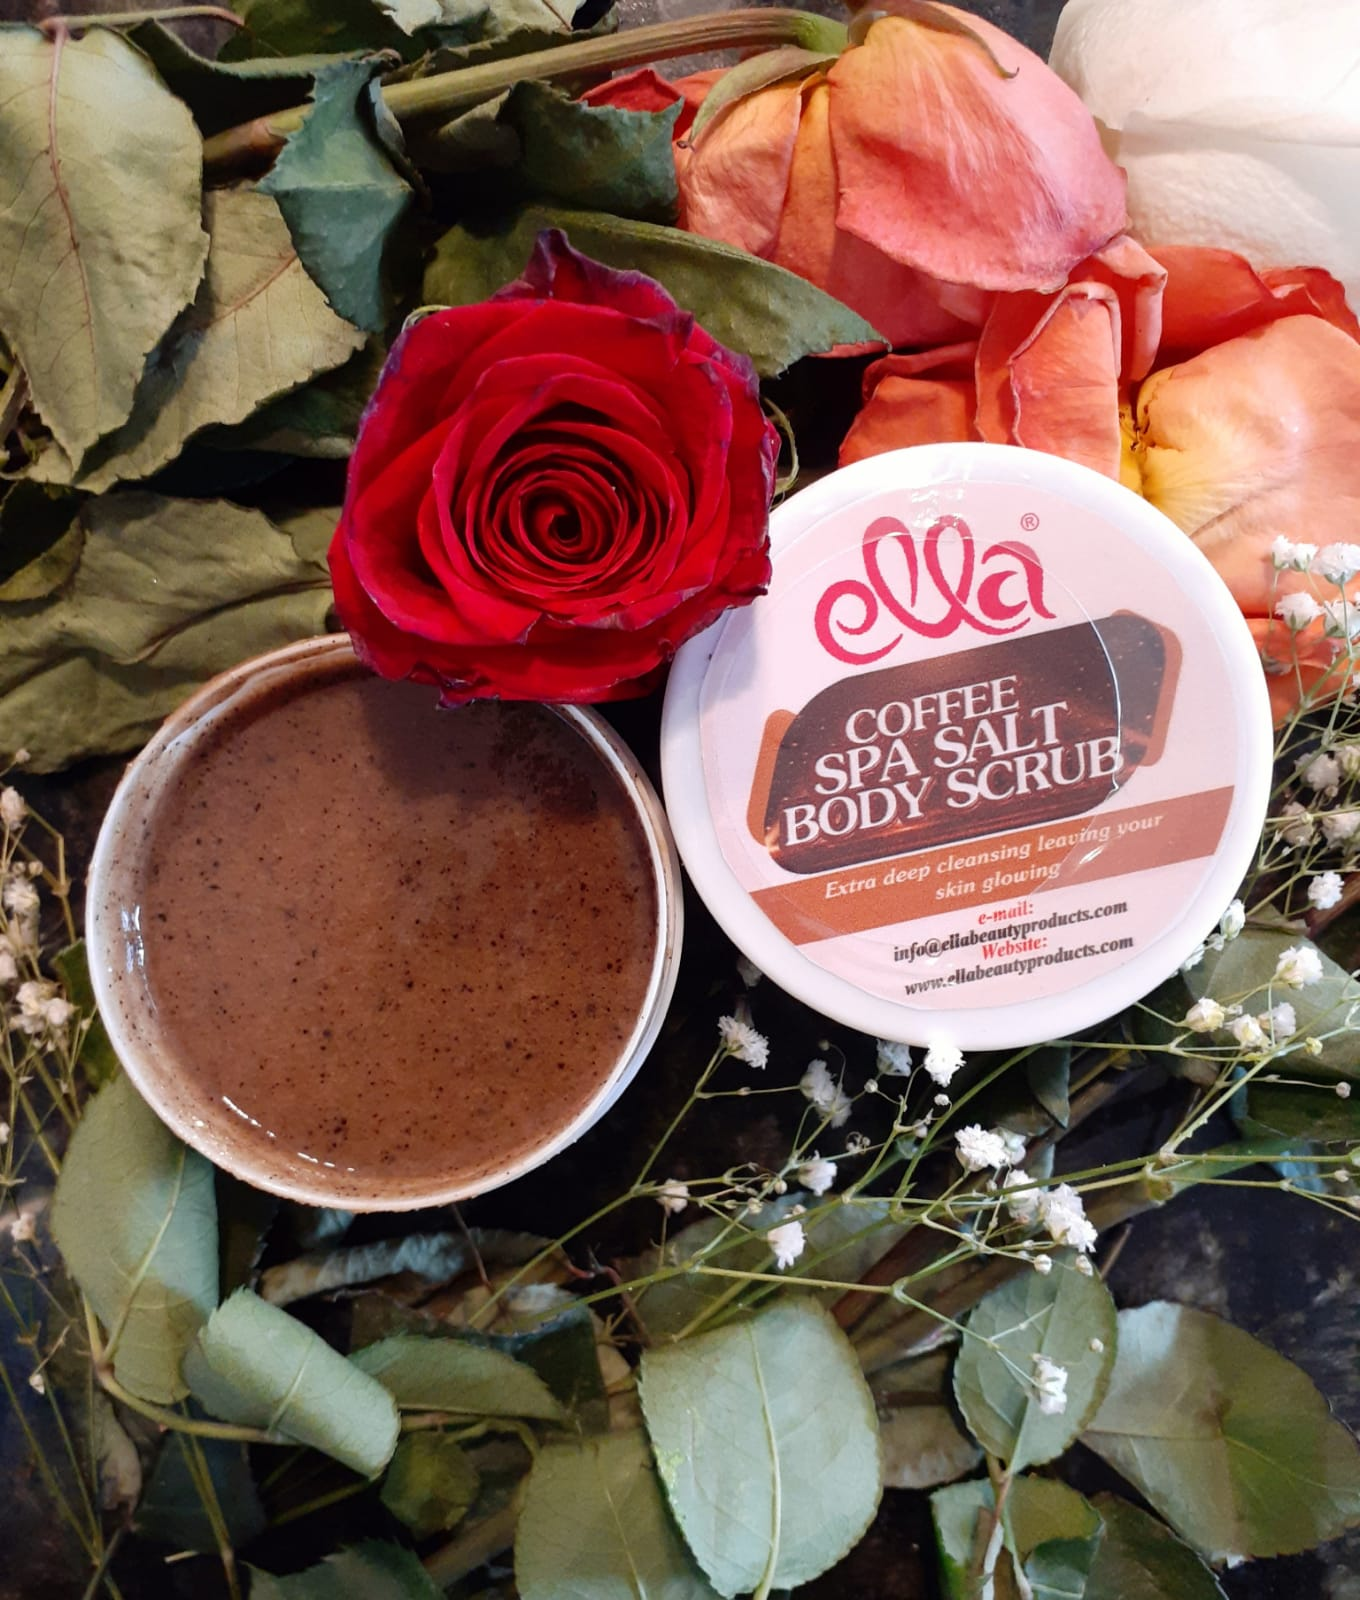 Ella Organic Beauty Products - Coffee Spa Salt Body Scrub